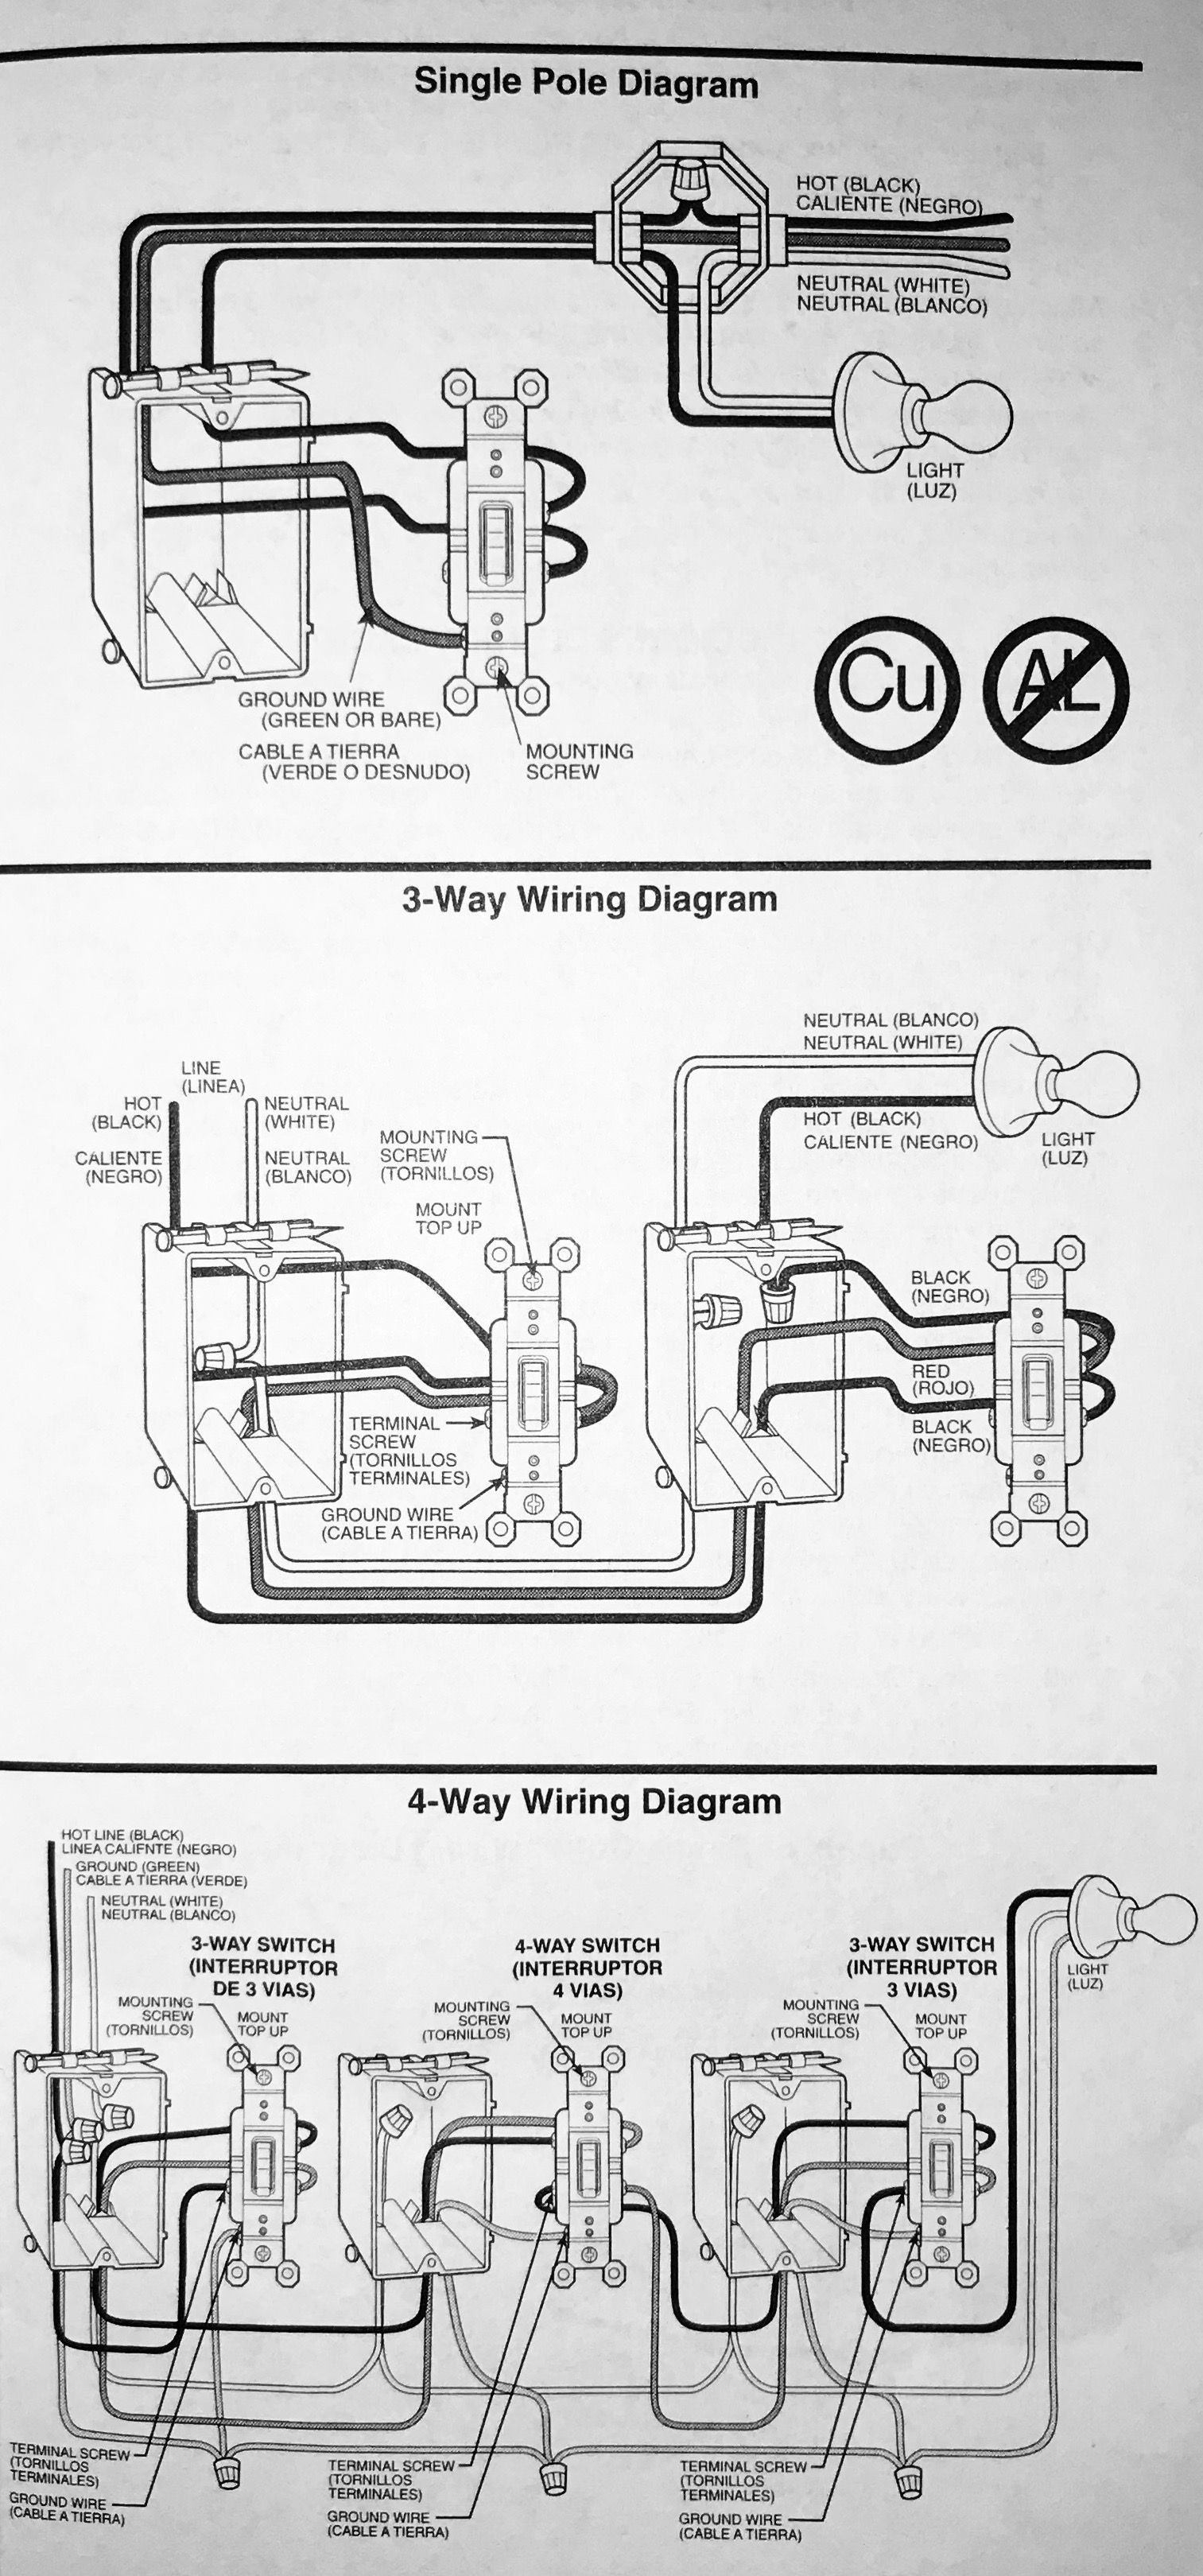 Unique Home Electrical Switch Wiring Diagram Wiringdiagram Diagramming Diagramm Visuals Vi Electrical Wiring Electrical Switch Wiring Electrical Switches